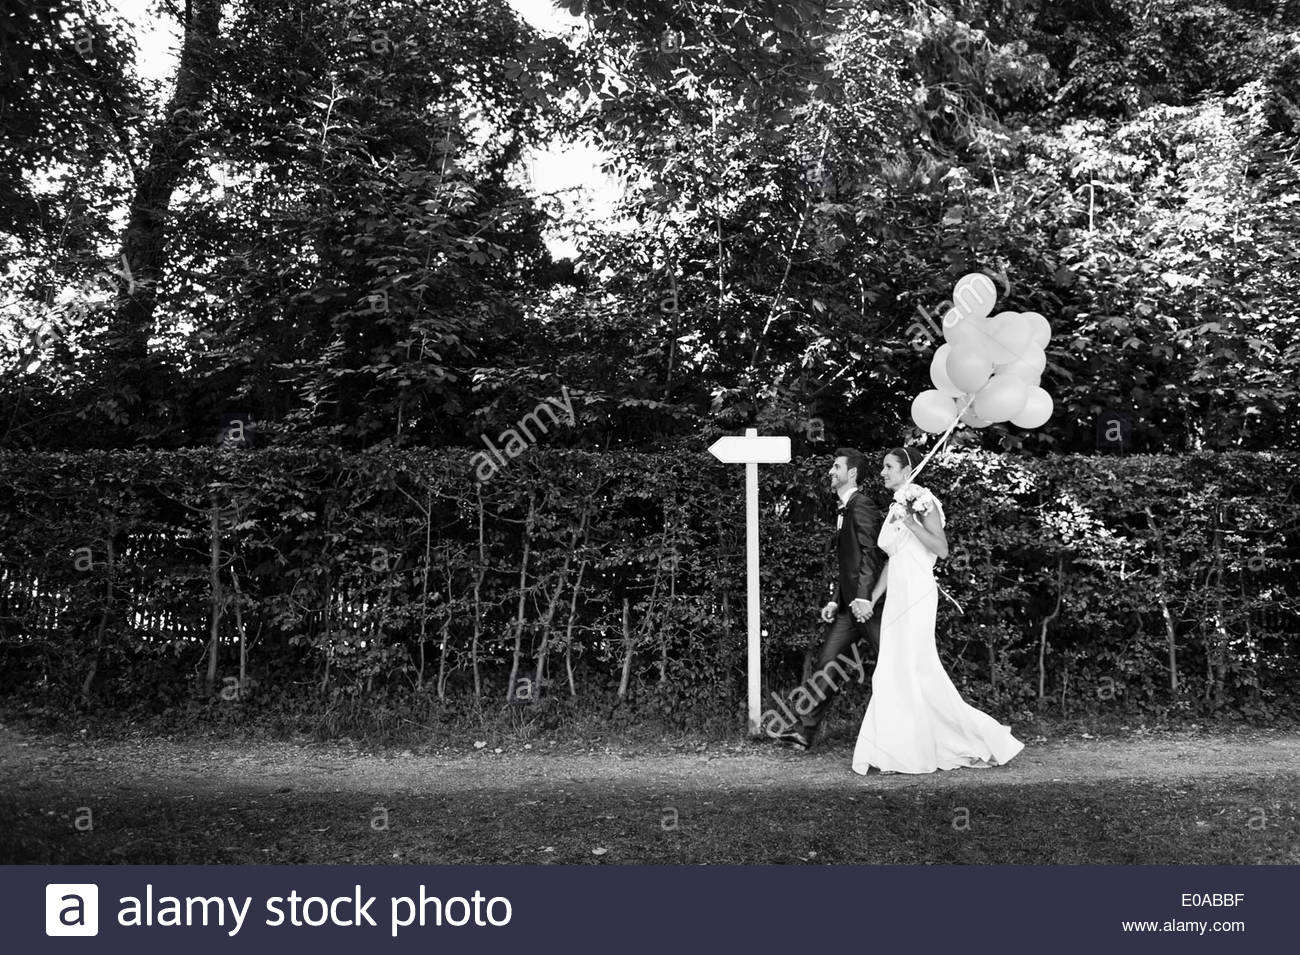 B&W image of mid adult bride and groom walking in garden - Stock Image